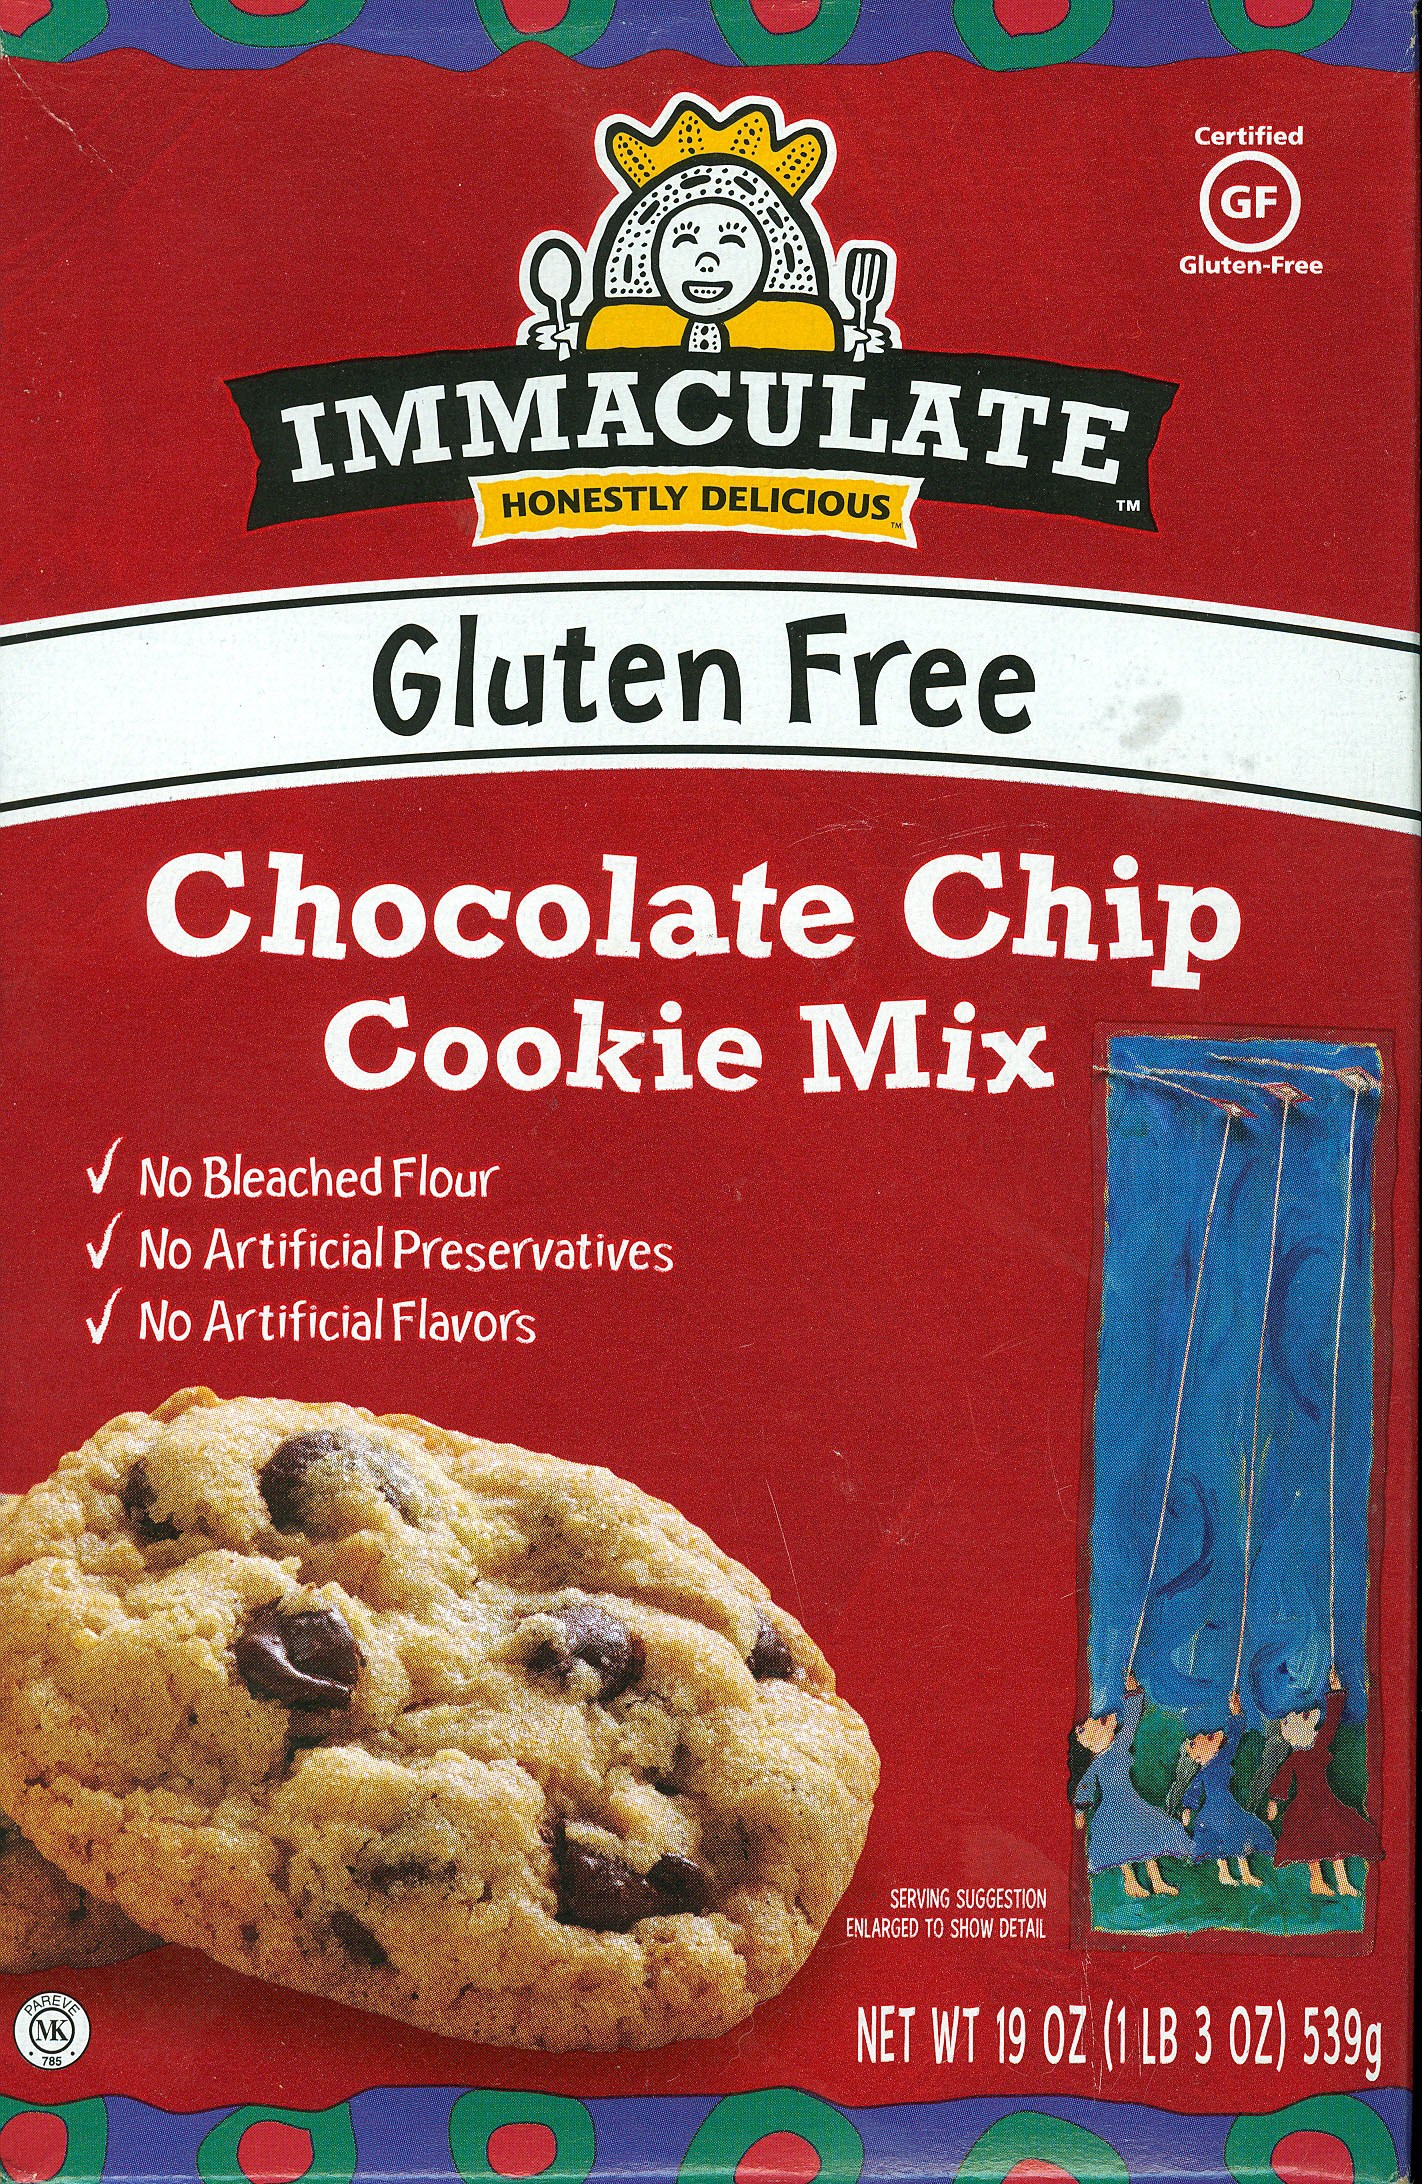 Immaculate Chocolate Chip Cookie Mix